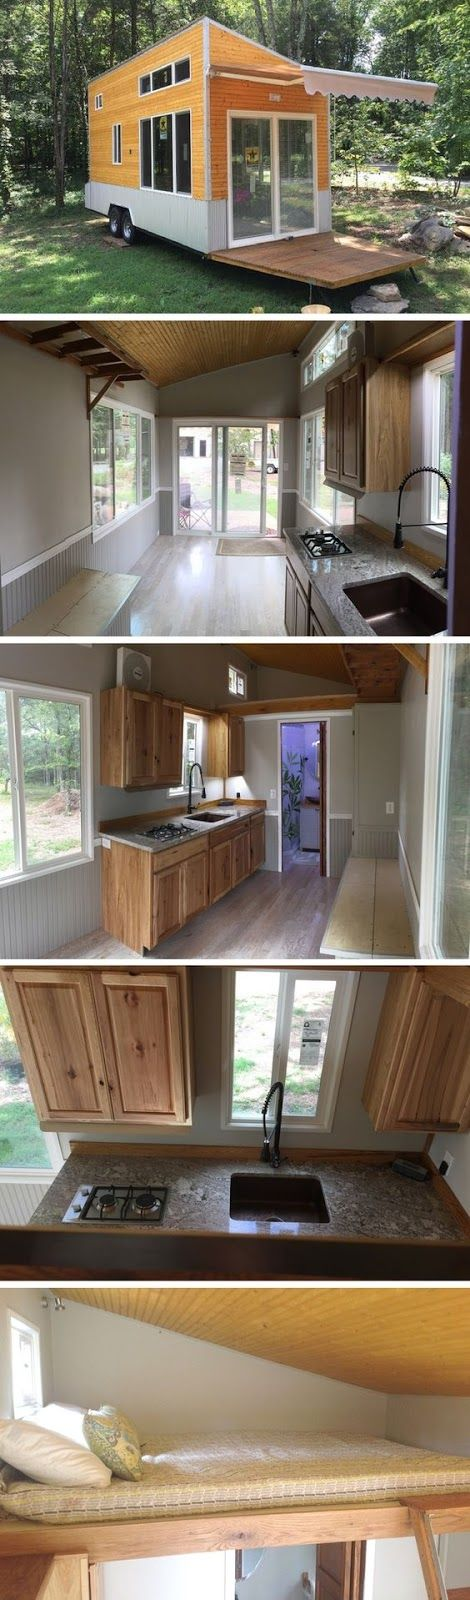 mytinyhousedirectory: Custom Nashville Tiny House 200 Sq Ft Currently for  sale in Nashville TN for  Little Houses On WheelsHouse ...